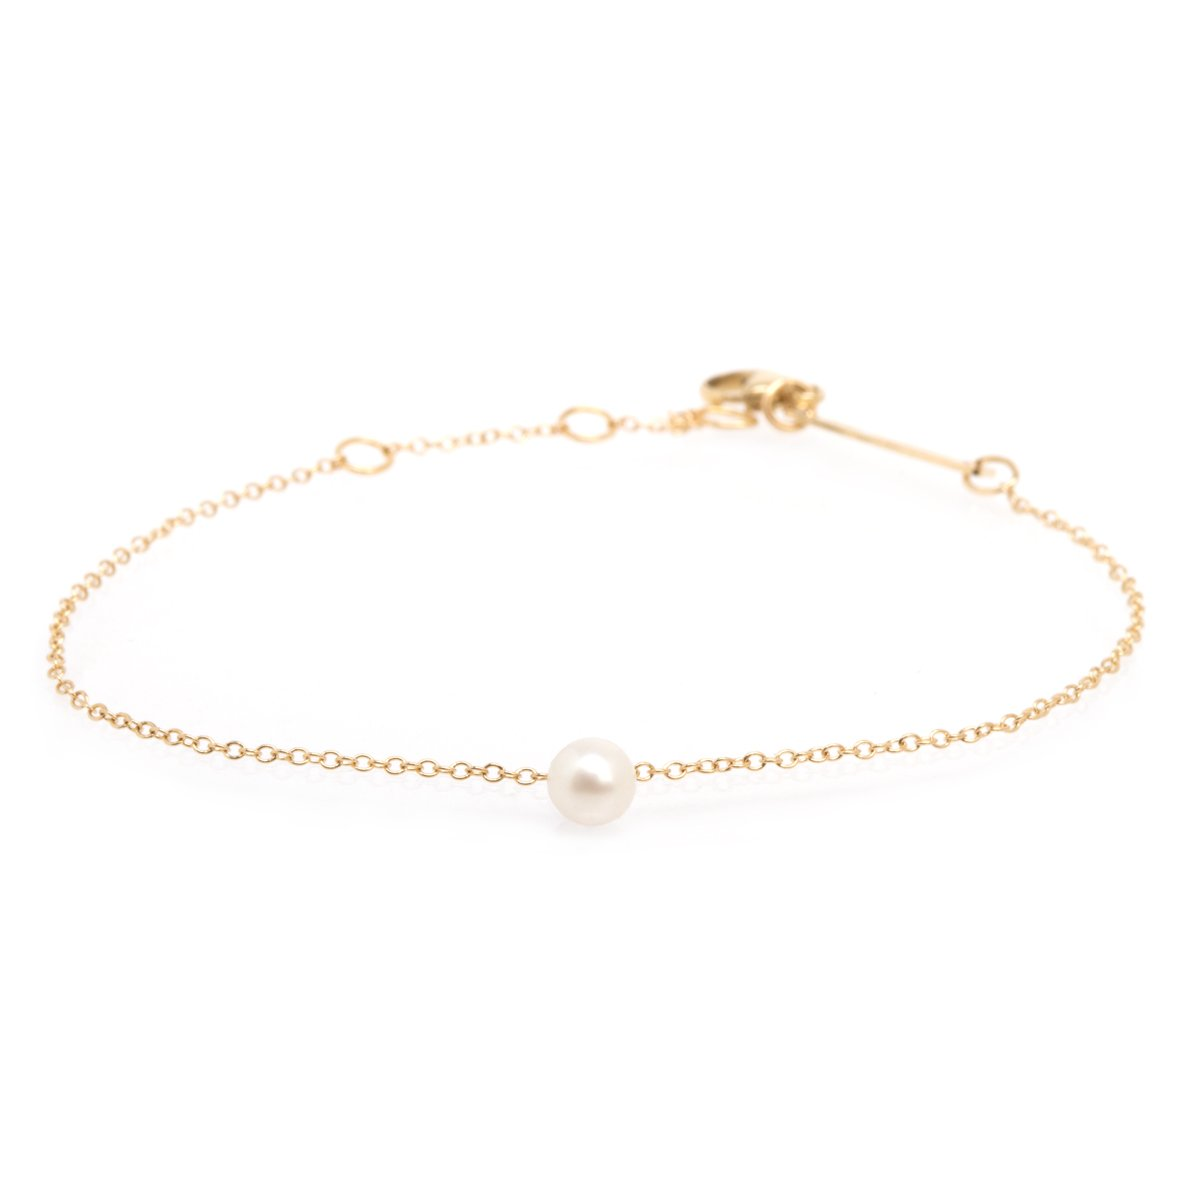 Zoe Chicco 14k Chain With Pearl Bracelet